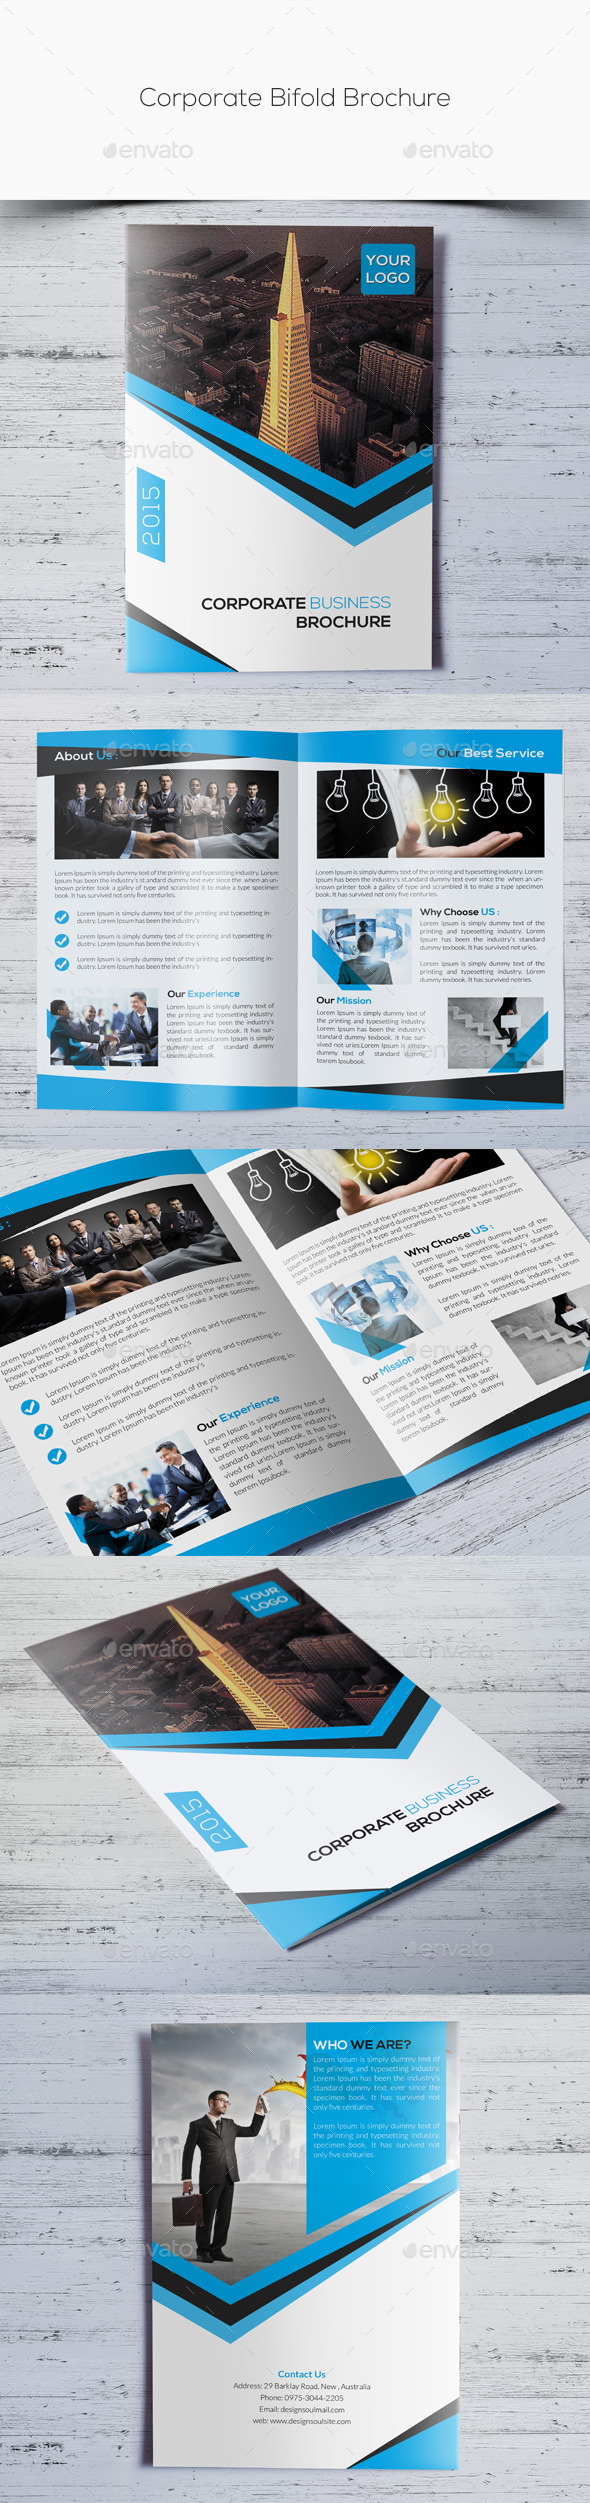 GraphicRiver Corporate Bifold Brochure 10909494